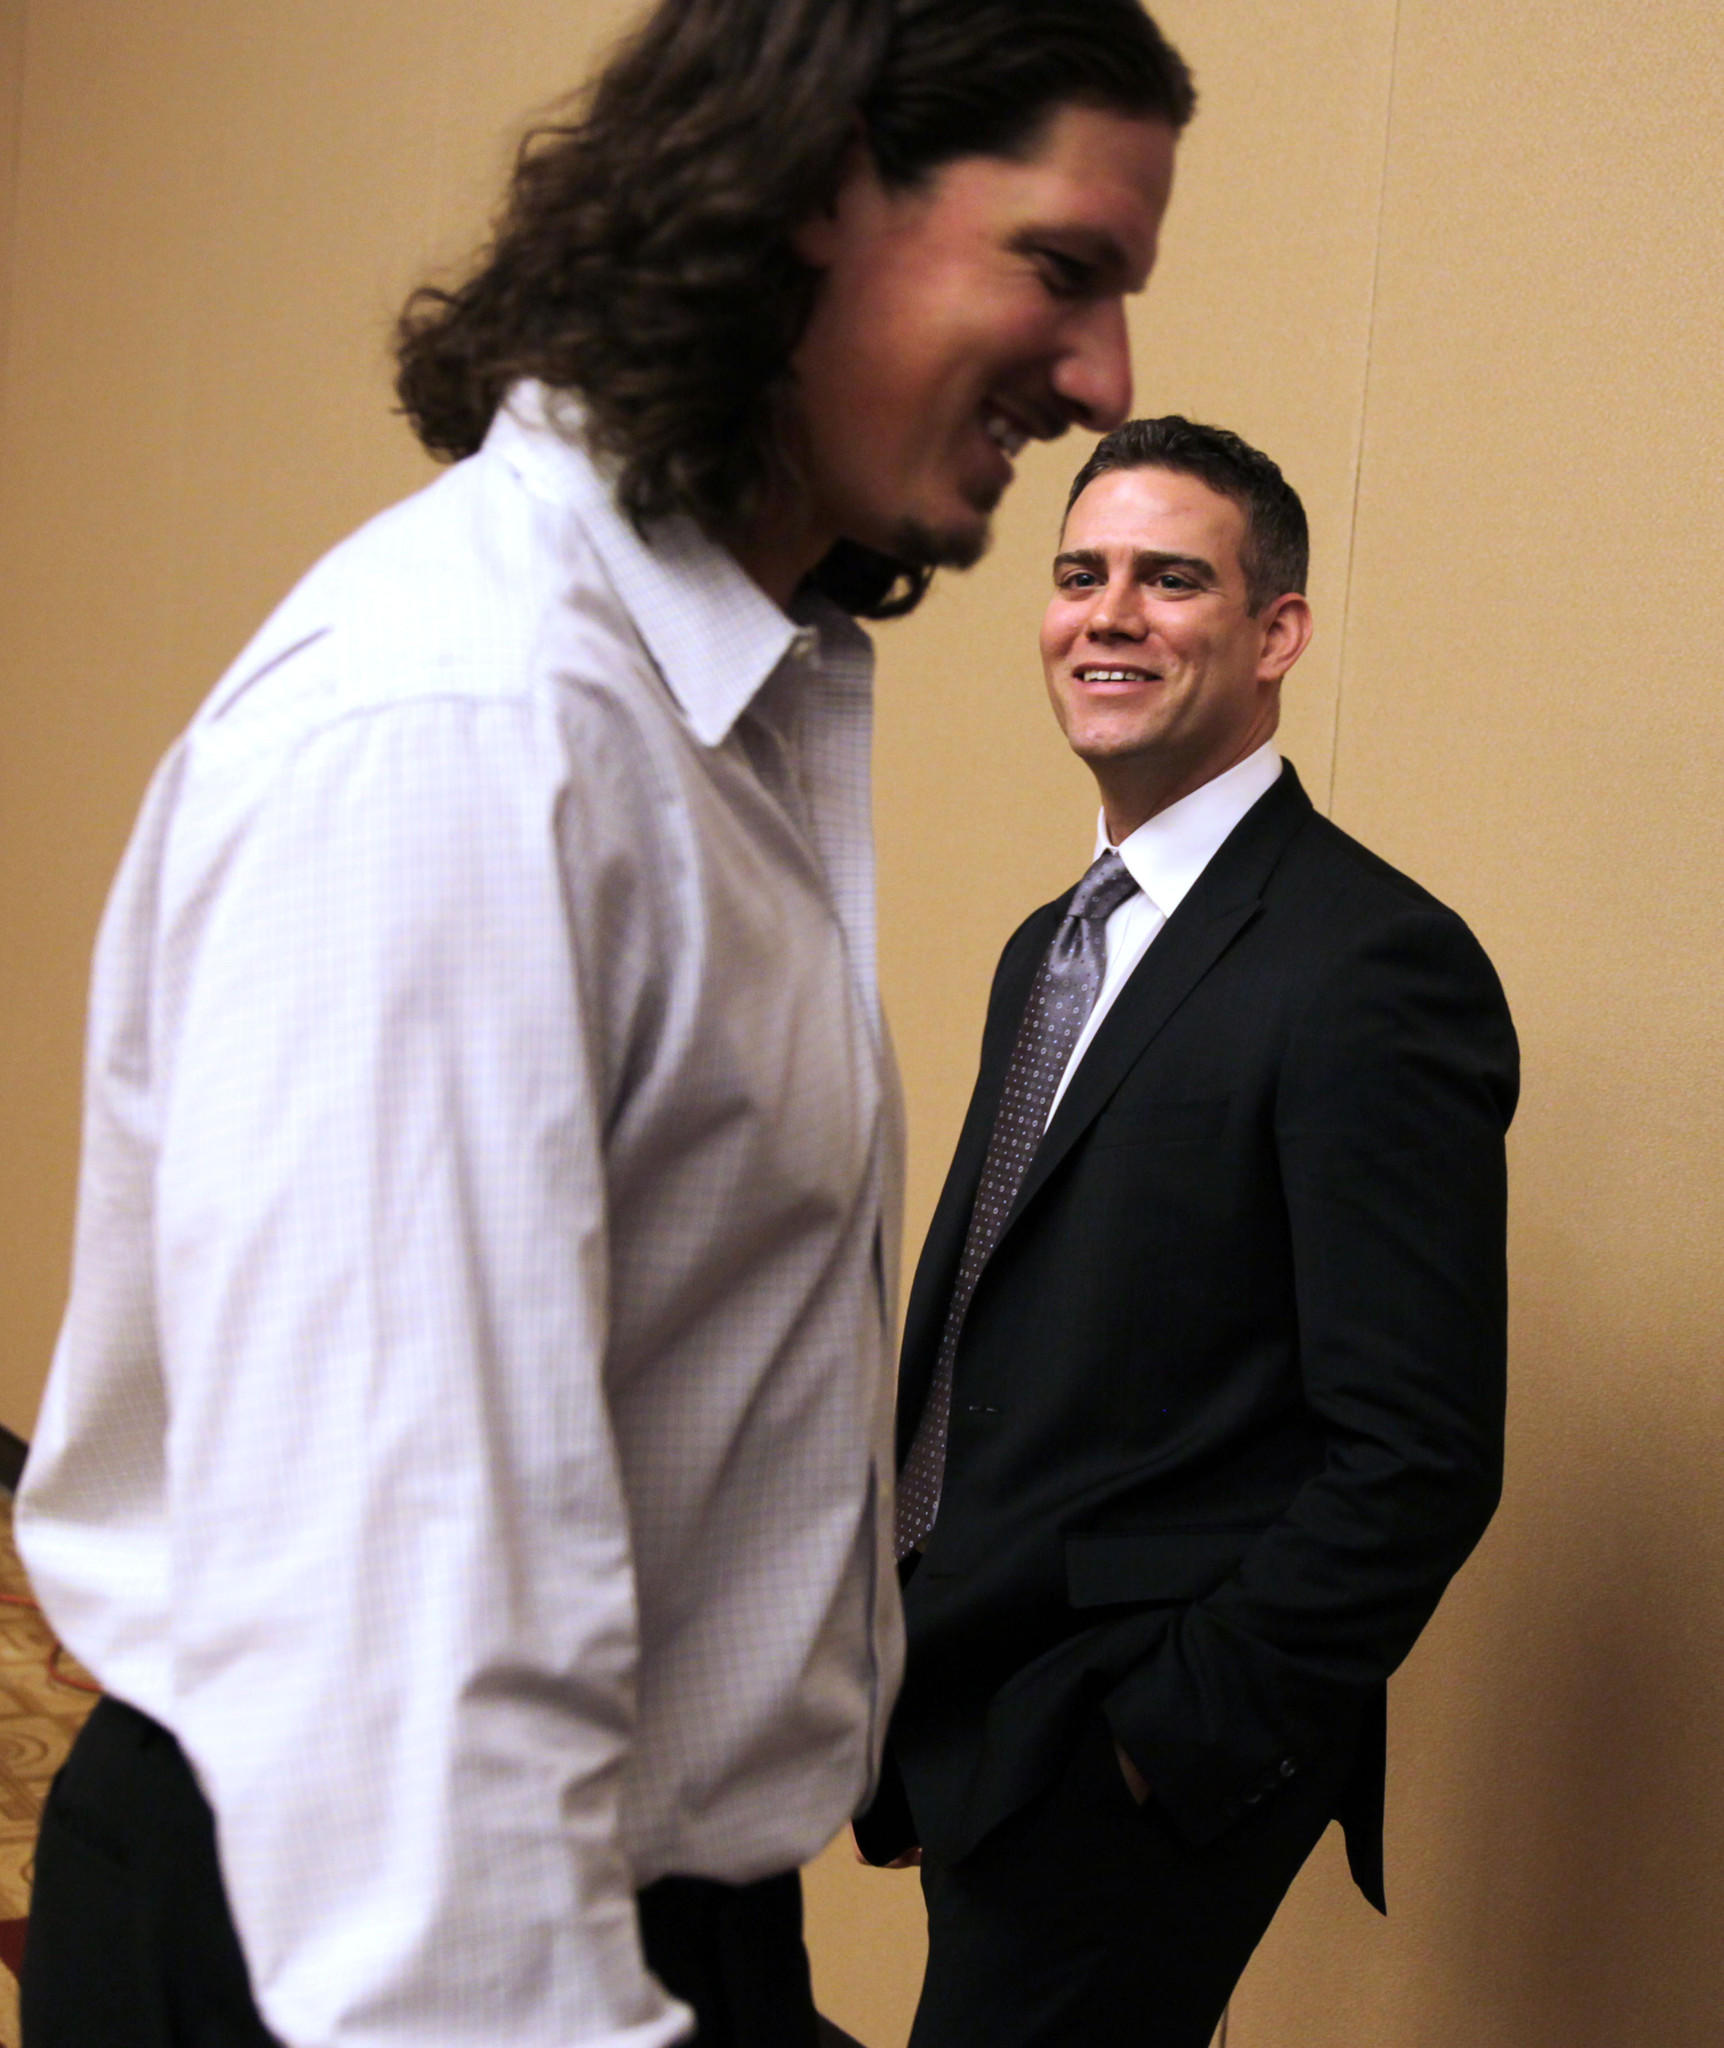 Jeff Samarzija and Theo Epstein chat at the 2014 Cubs Convention.